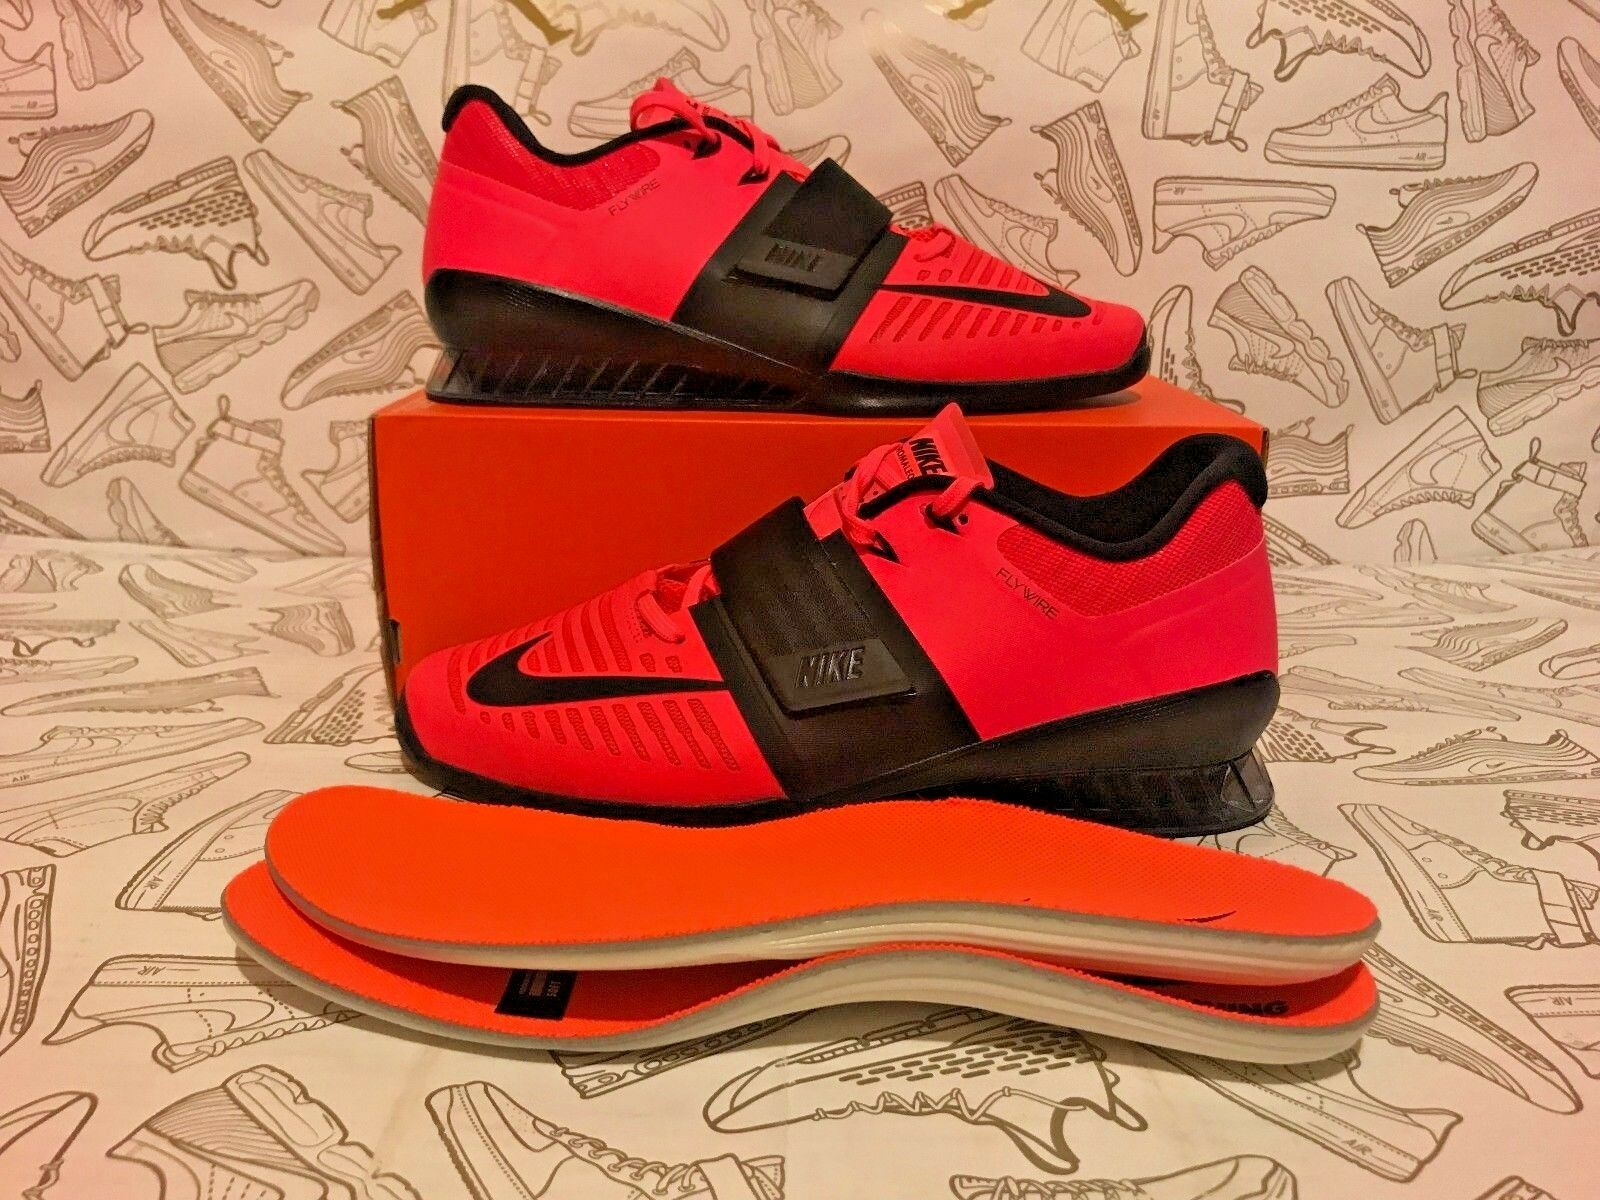 NEW Nike Romaleos 3 Weight Lifting Shoes Solar Red 852933-602 Men's Size 13